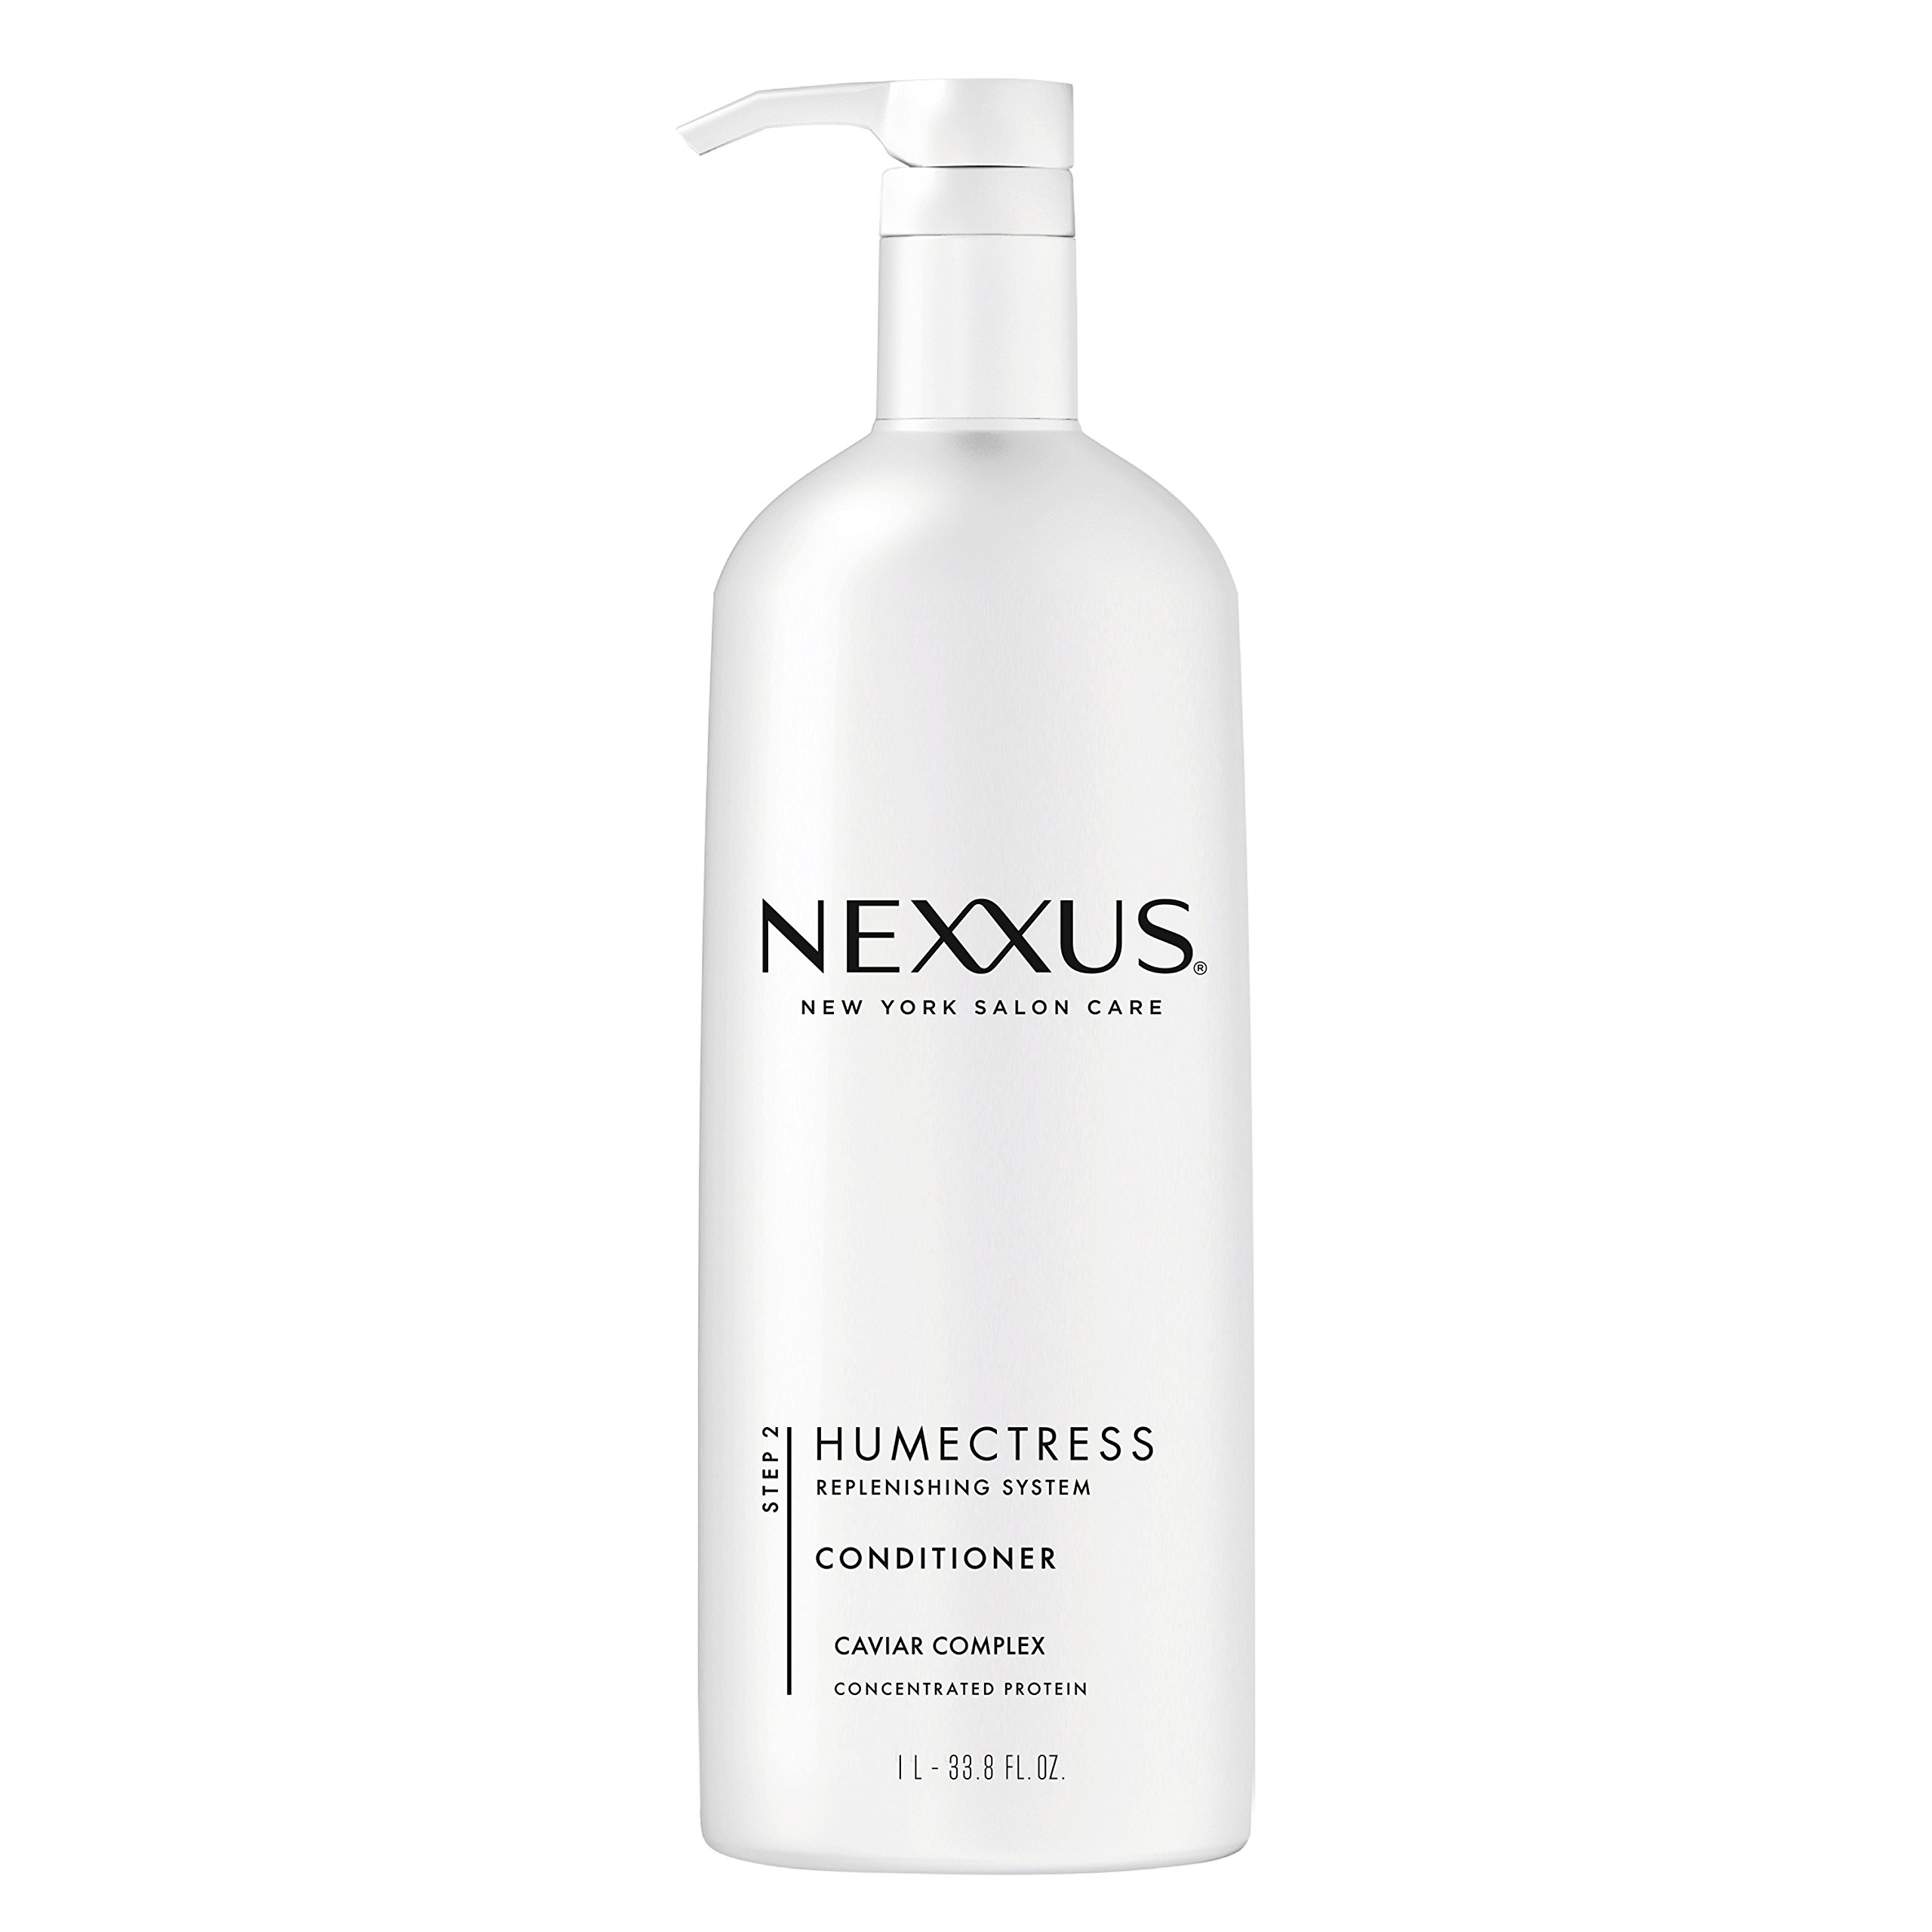 Humectress For Normal To Dry Hair Moisture Masque by nexxus #6